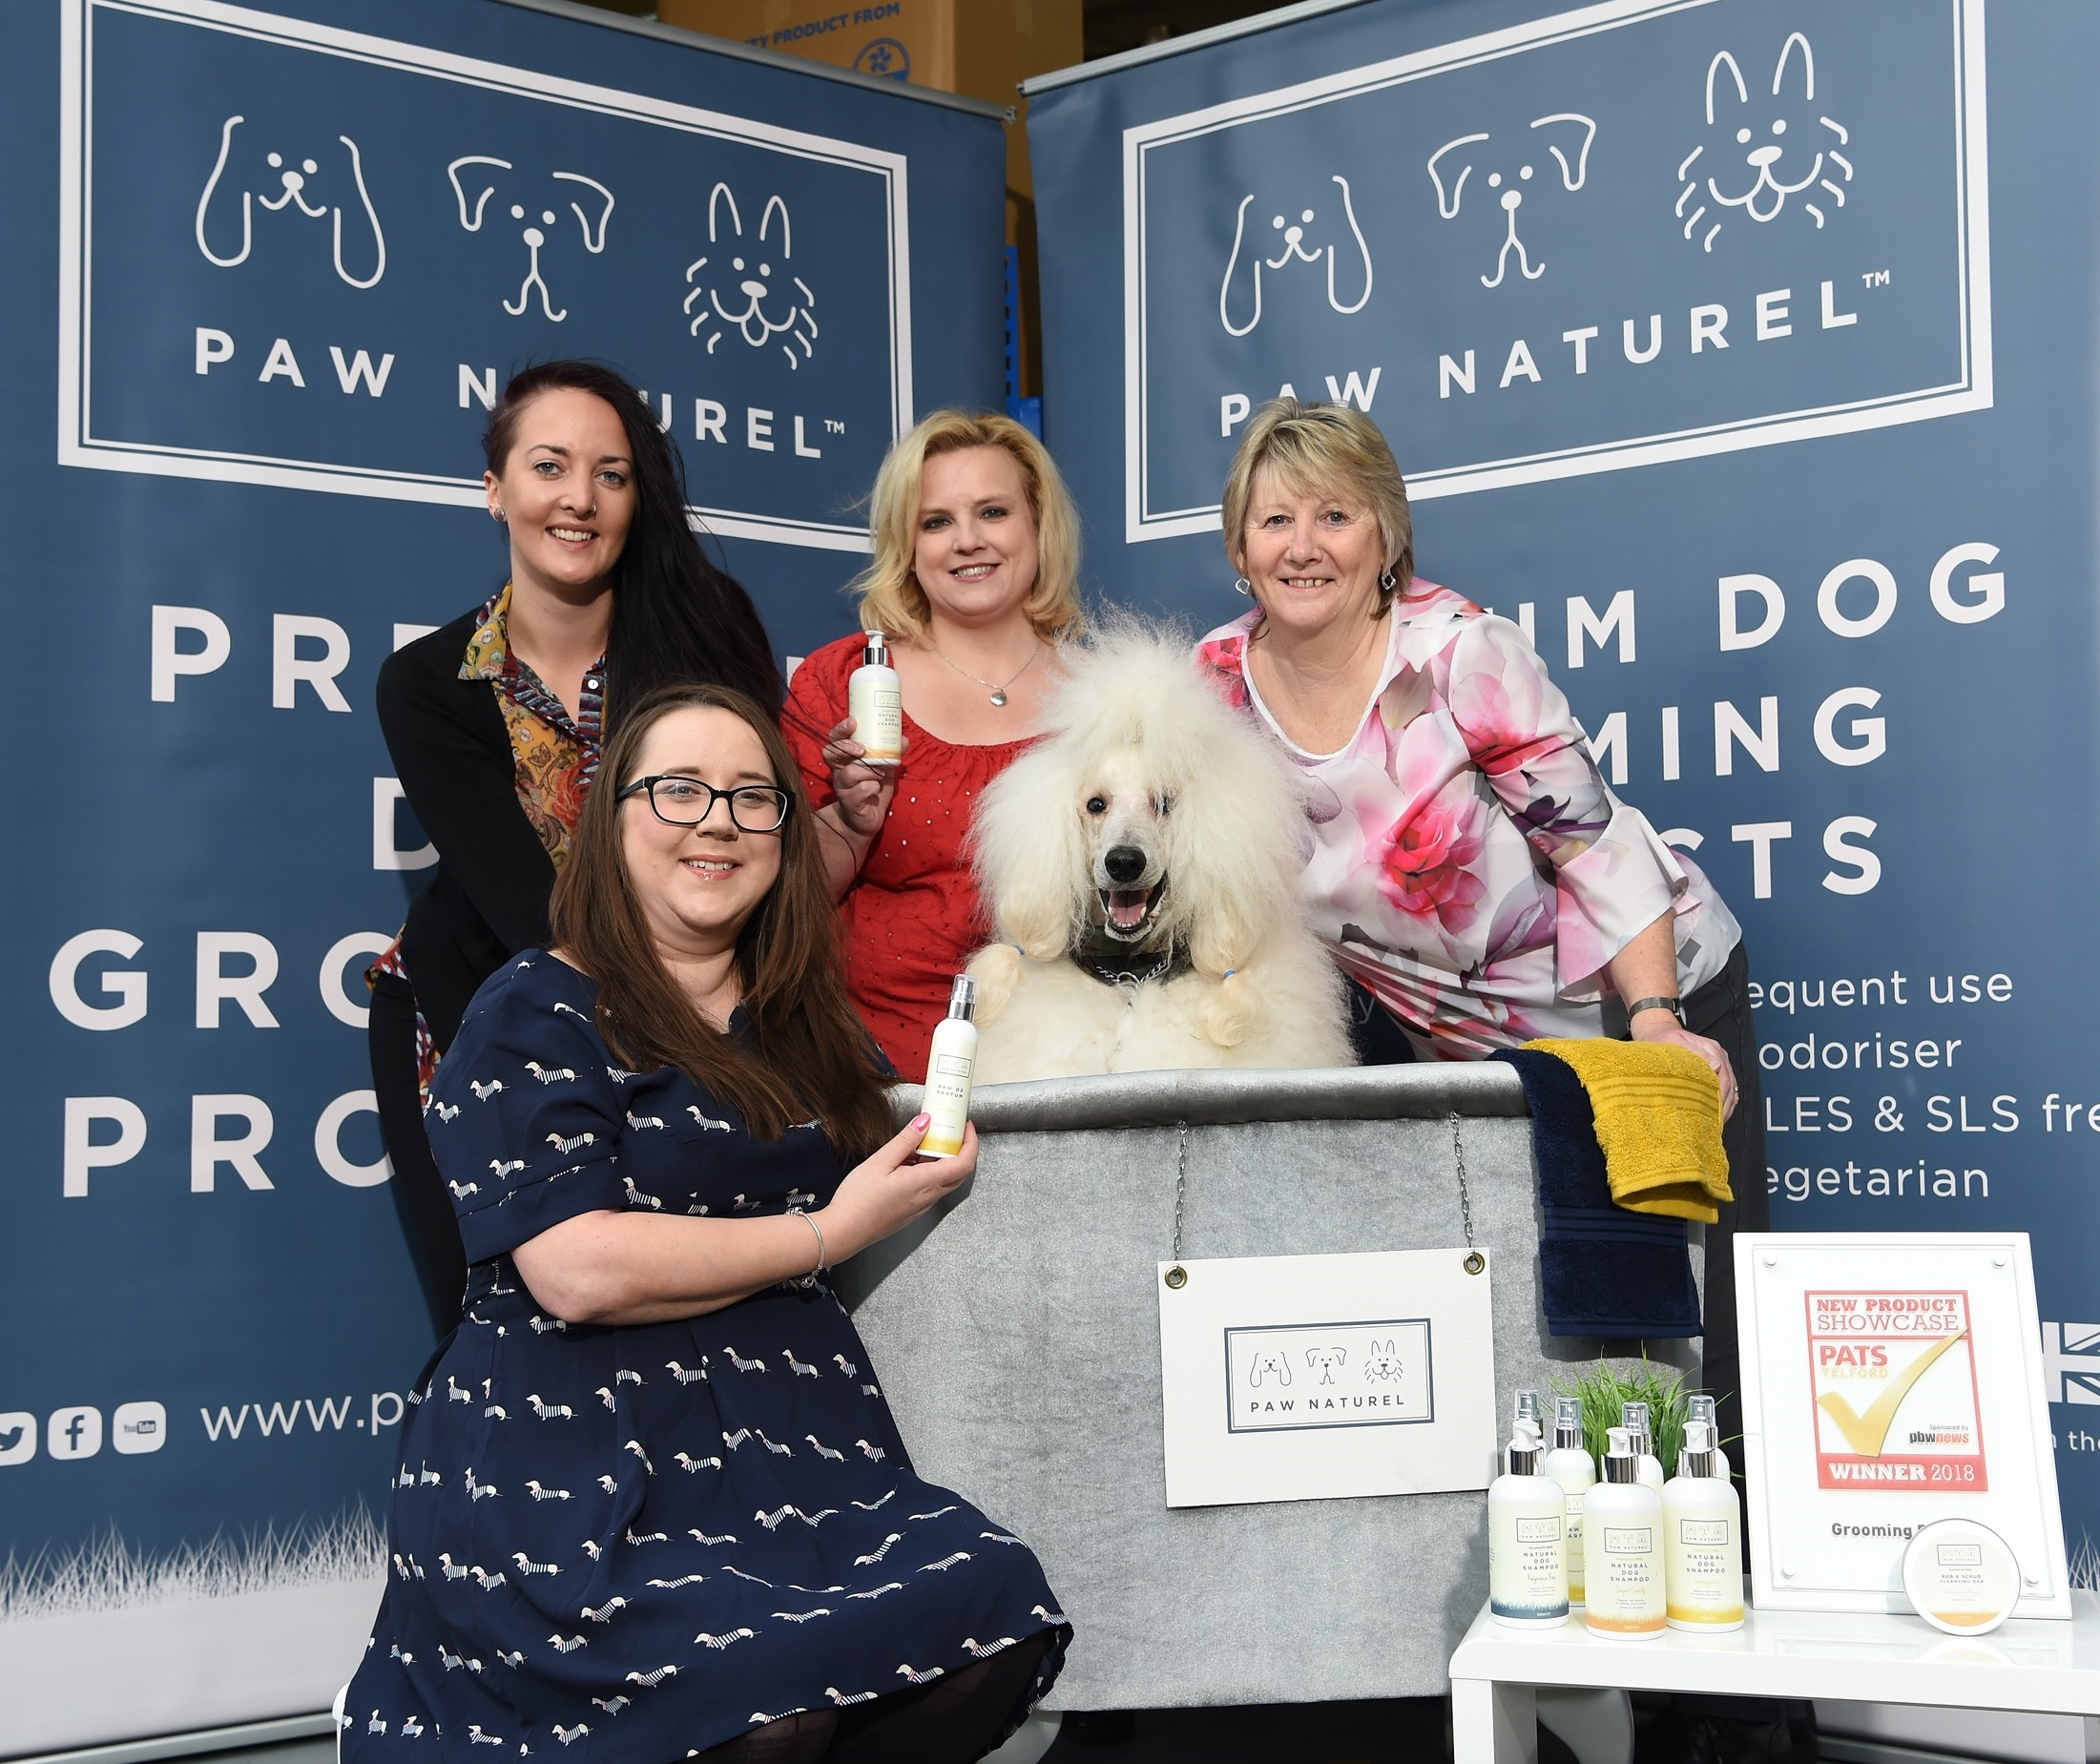 Leyland pet care business launches unique product range after Boost advice